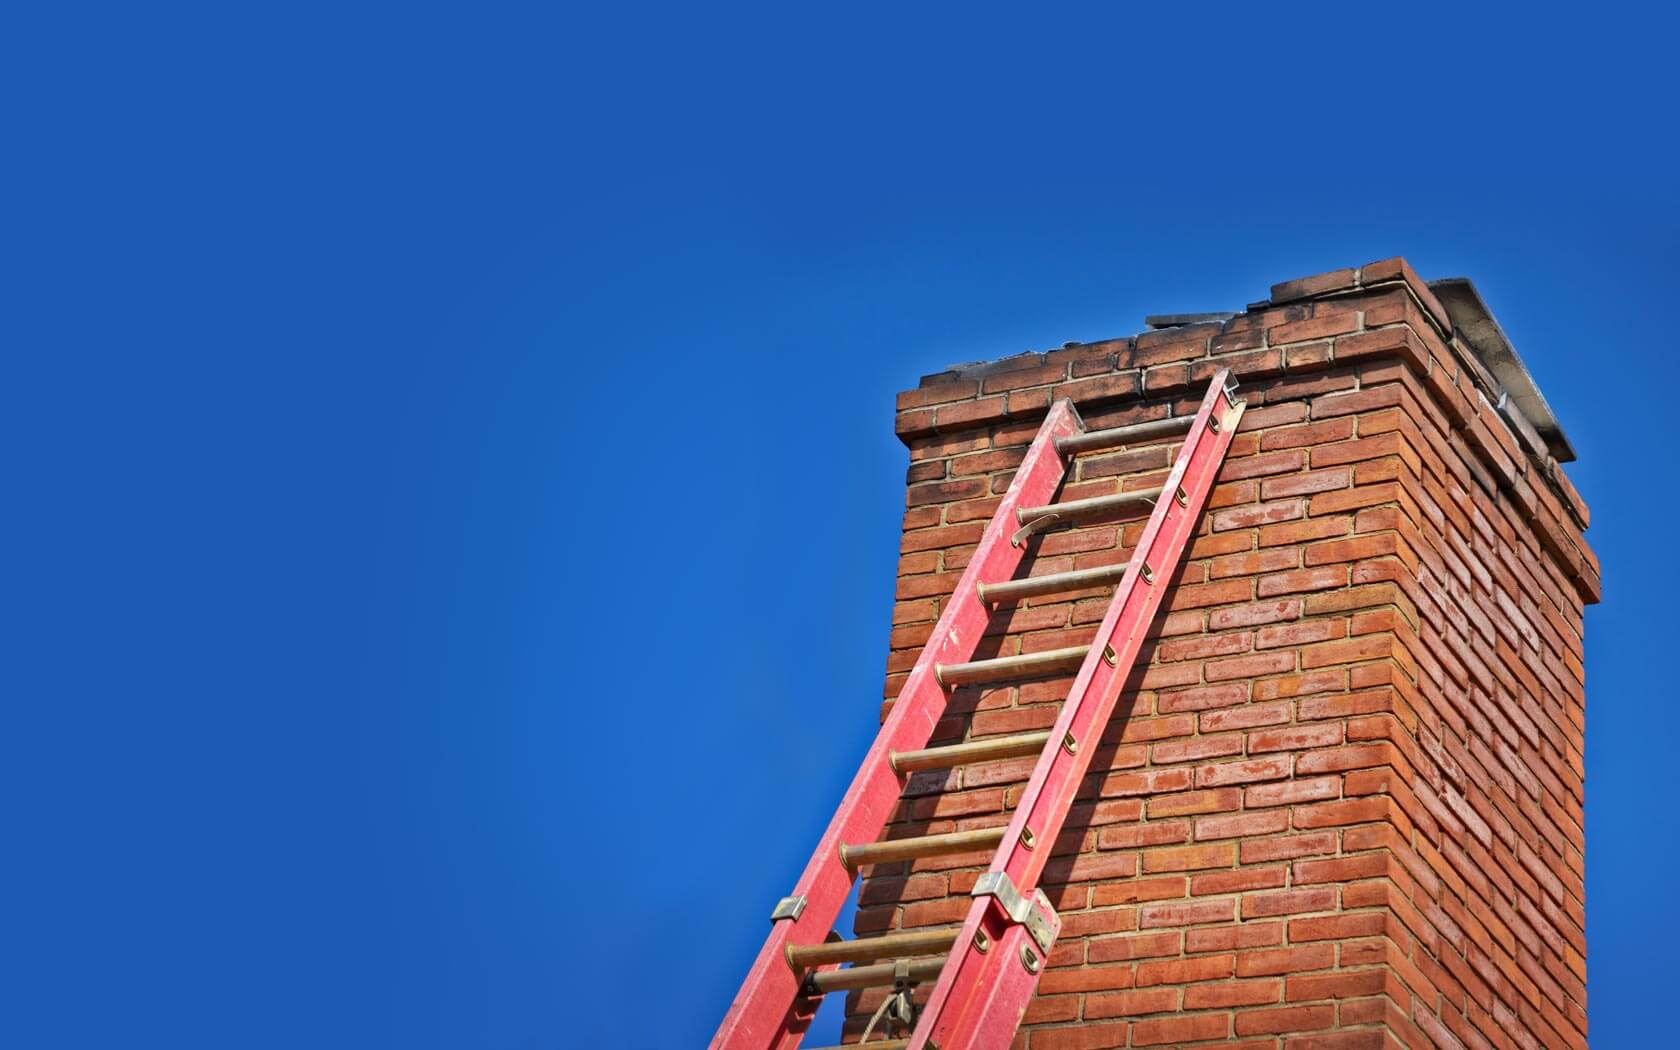 Cutlerville Chimney Cleaning